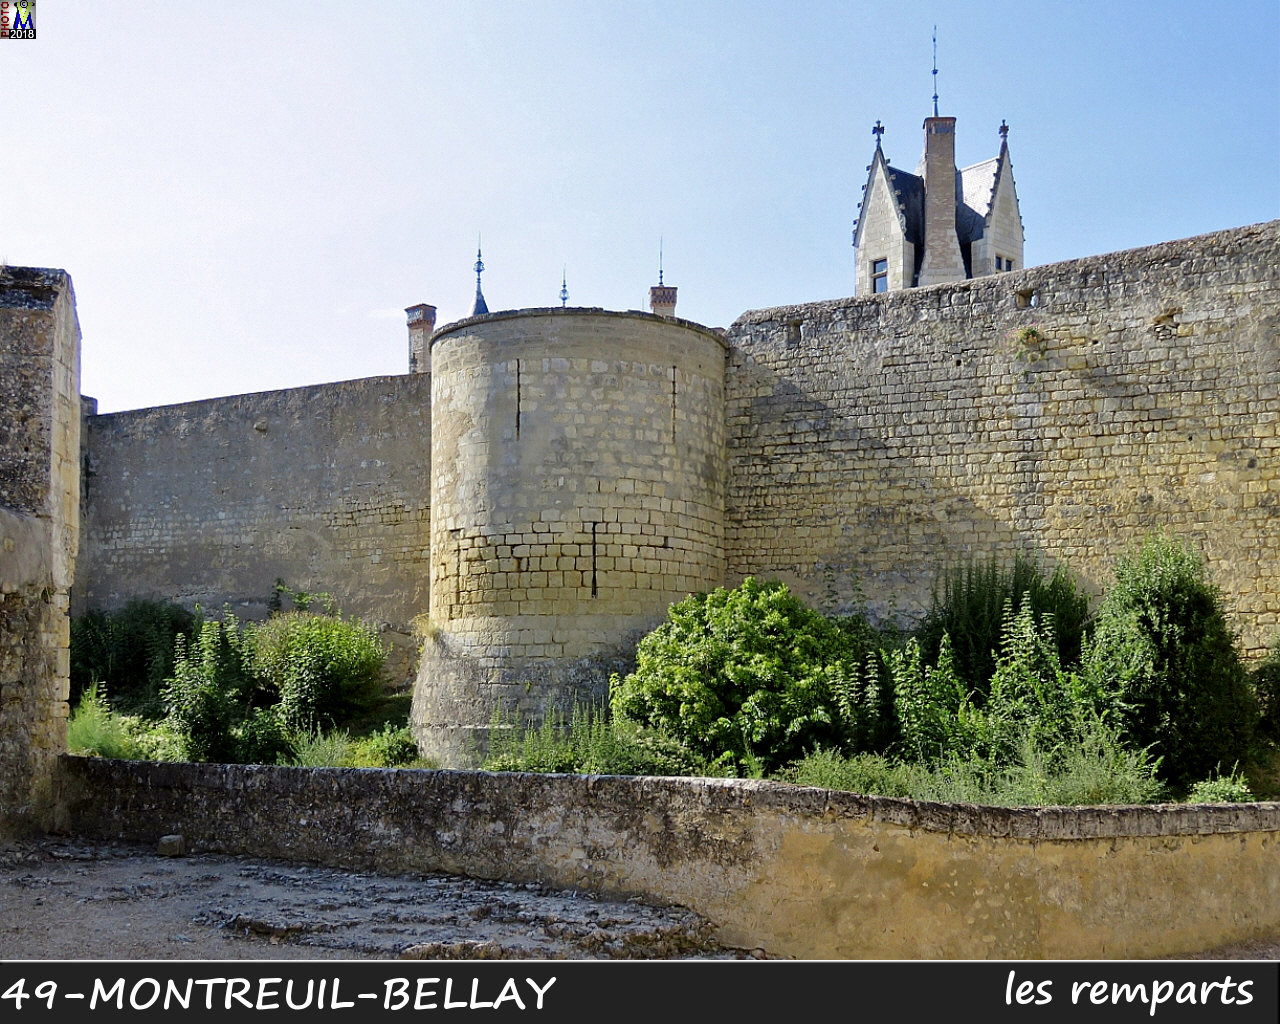 49MONTREUIL-BELLAY_remparts_1020.jpg